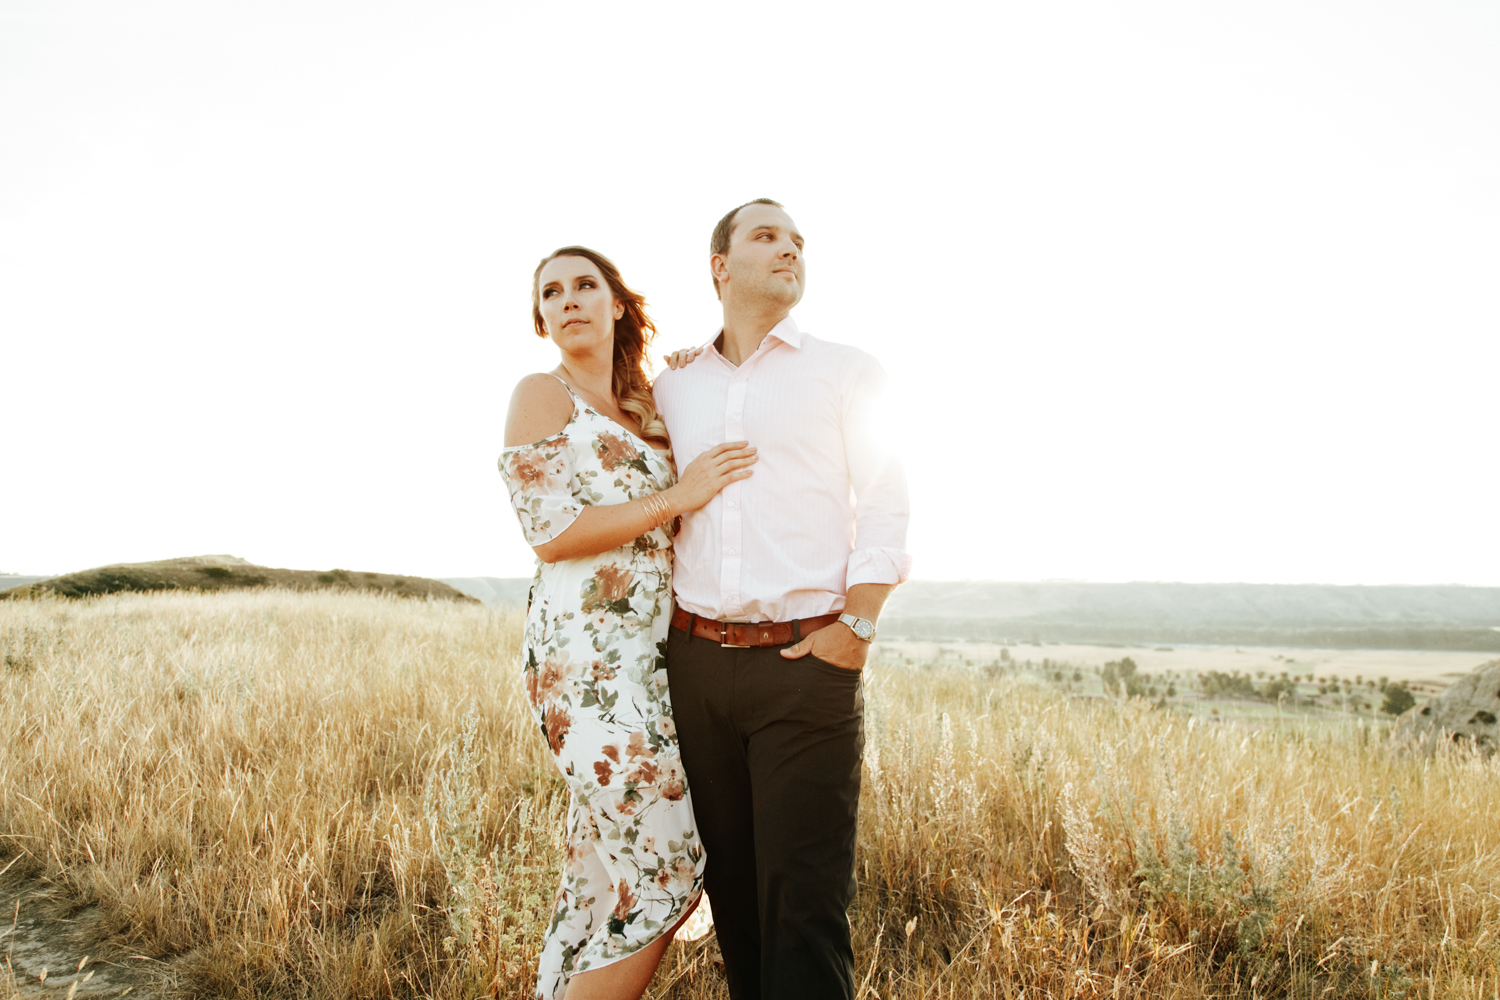 lethbridge-wedding-photographer-love-and-be-loved-photography-katie-kelli-engagement-picture-image-photo-17.jpg